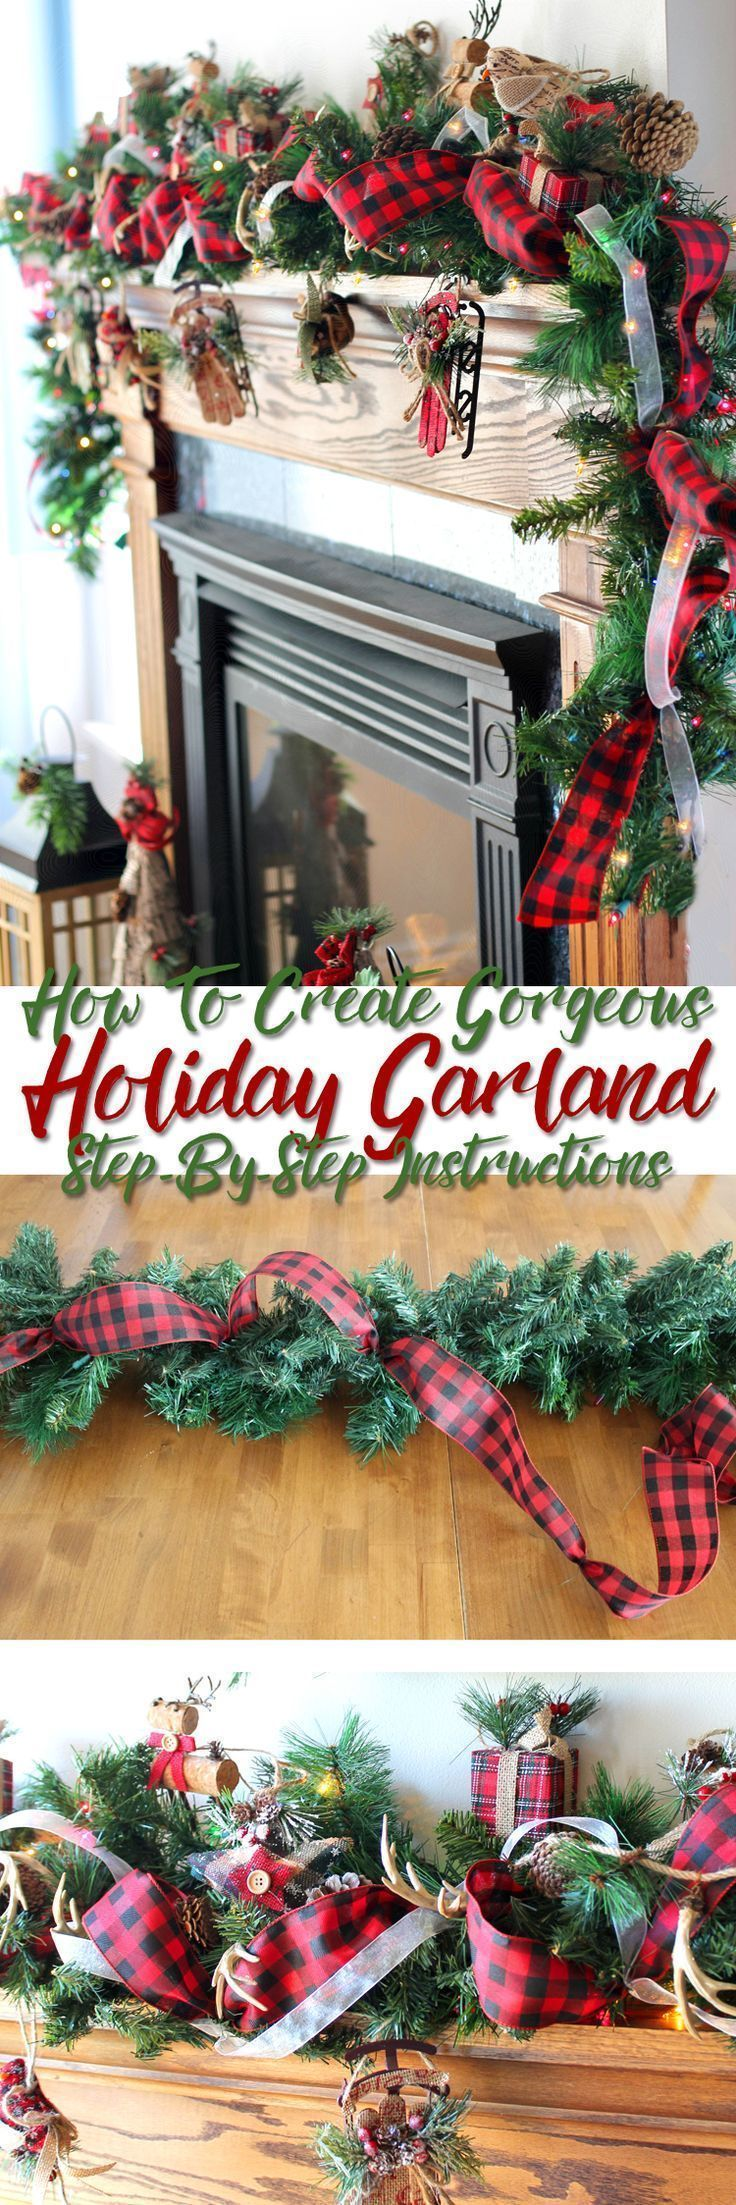 Step-by-step tutorial teaching you how to put together a stunning Christmas garland. So that's how the pros do it. Just in time for holiday decorating. This will look so good on my fireplace for Christmas!